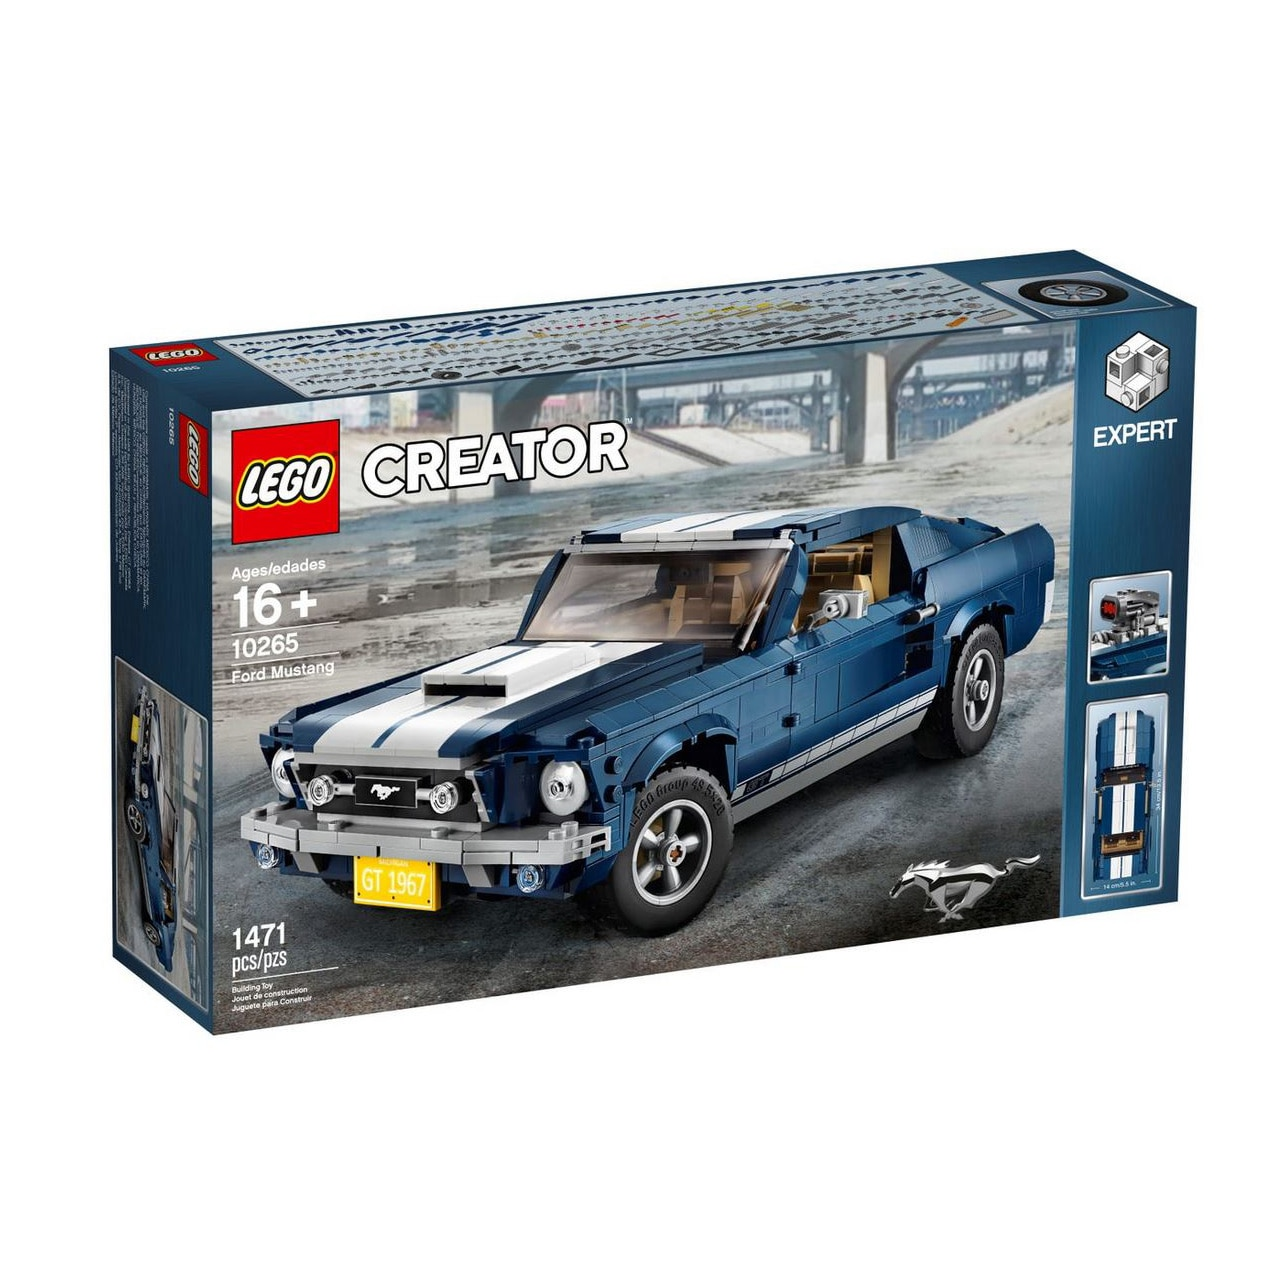 Fotografie LEGO Creator Expert - Ford Mustang 10265, 1471 piese